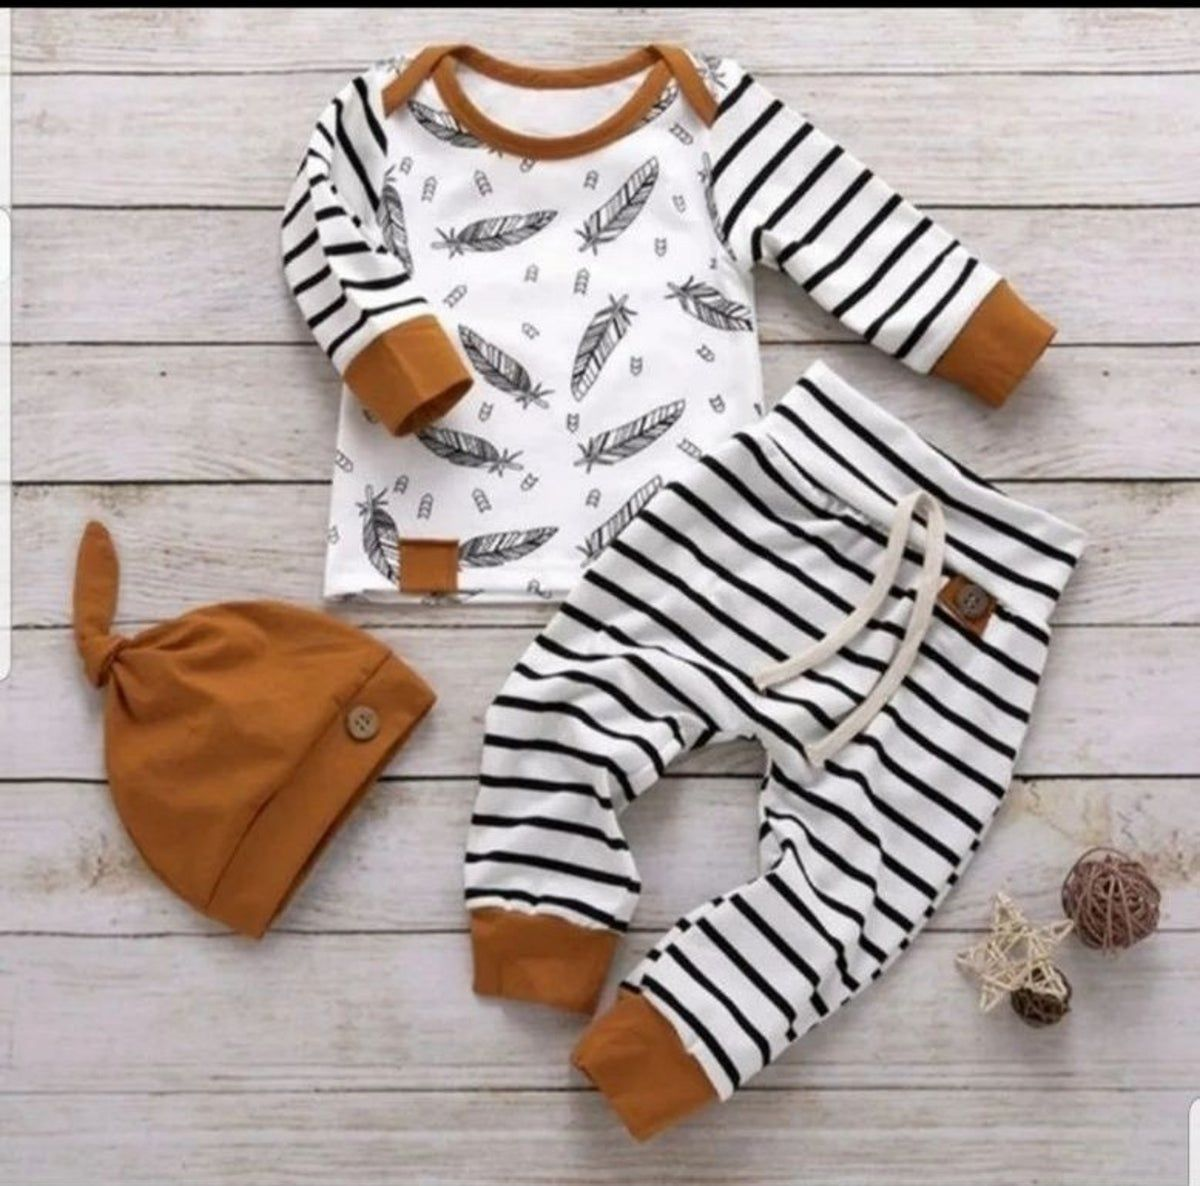 Falling Leaves Shirt and Pants Baby Clothing Outfit Preemie and Newborn Sizes